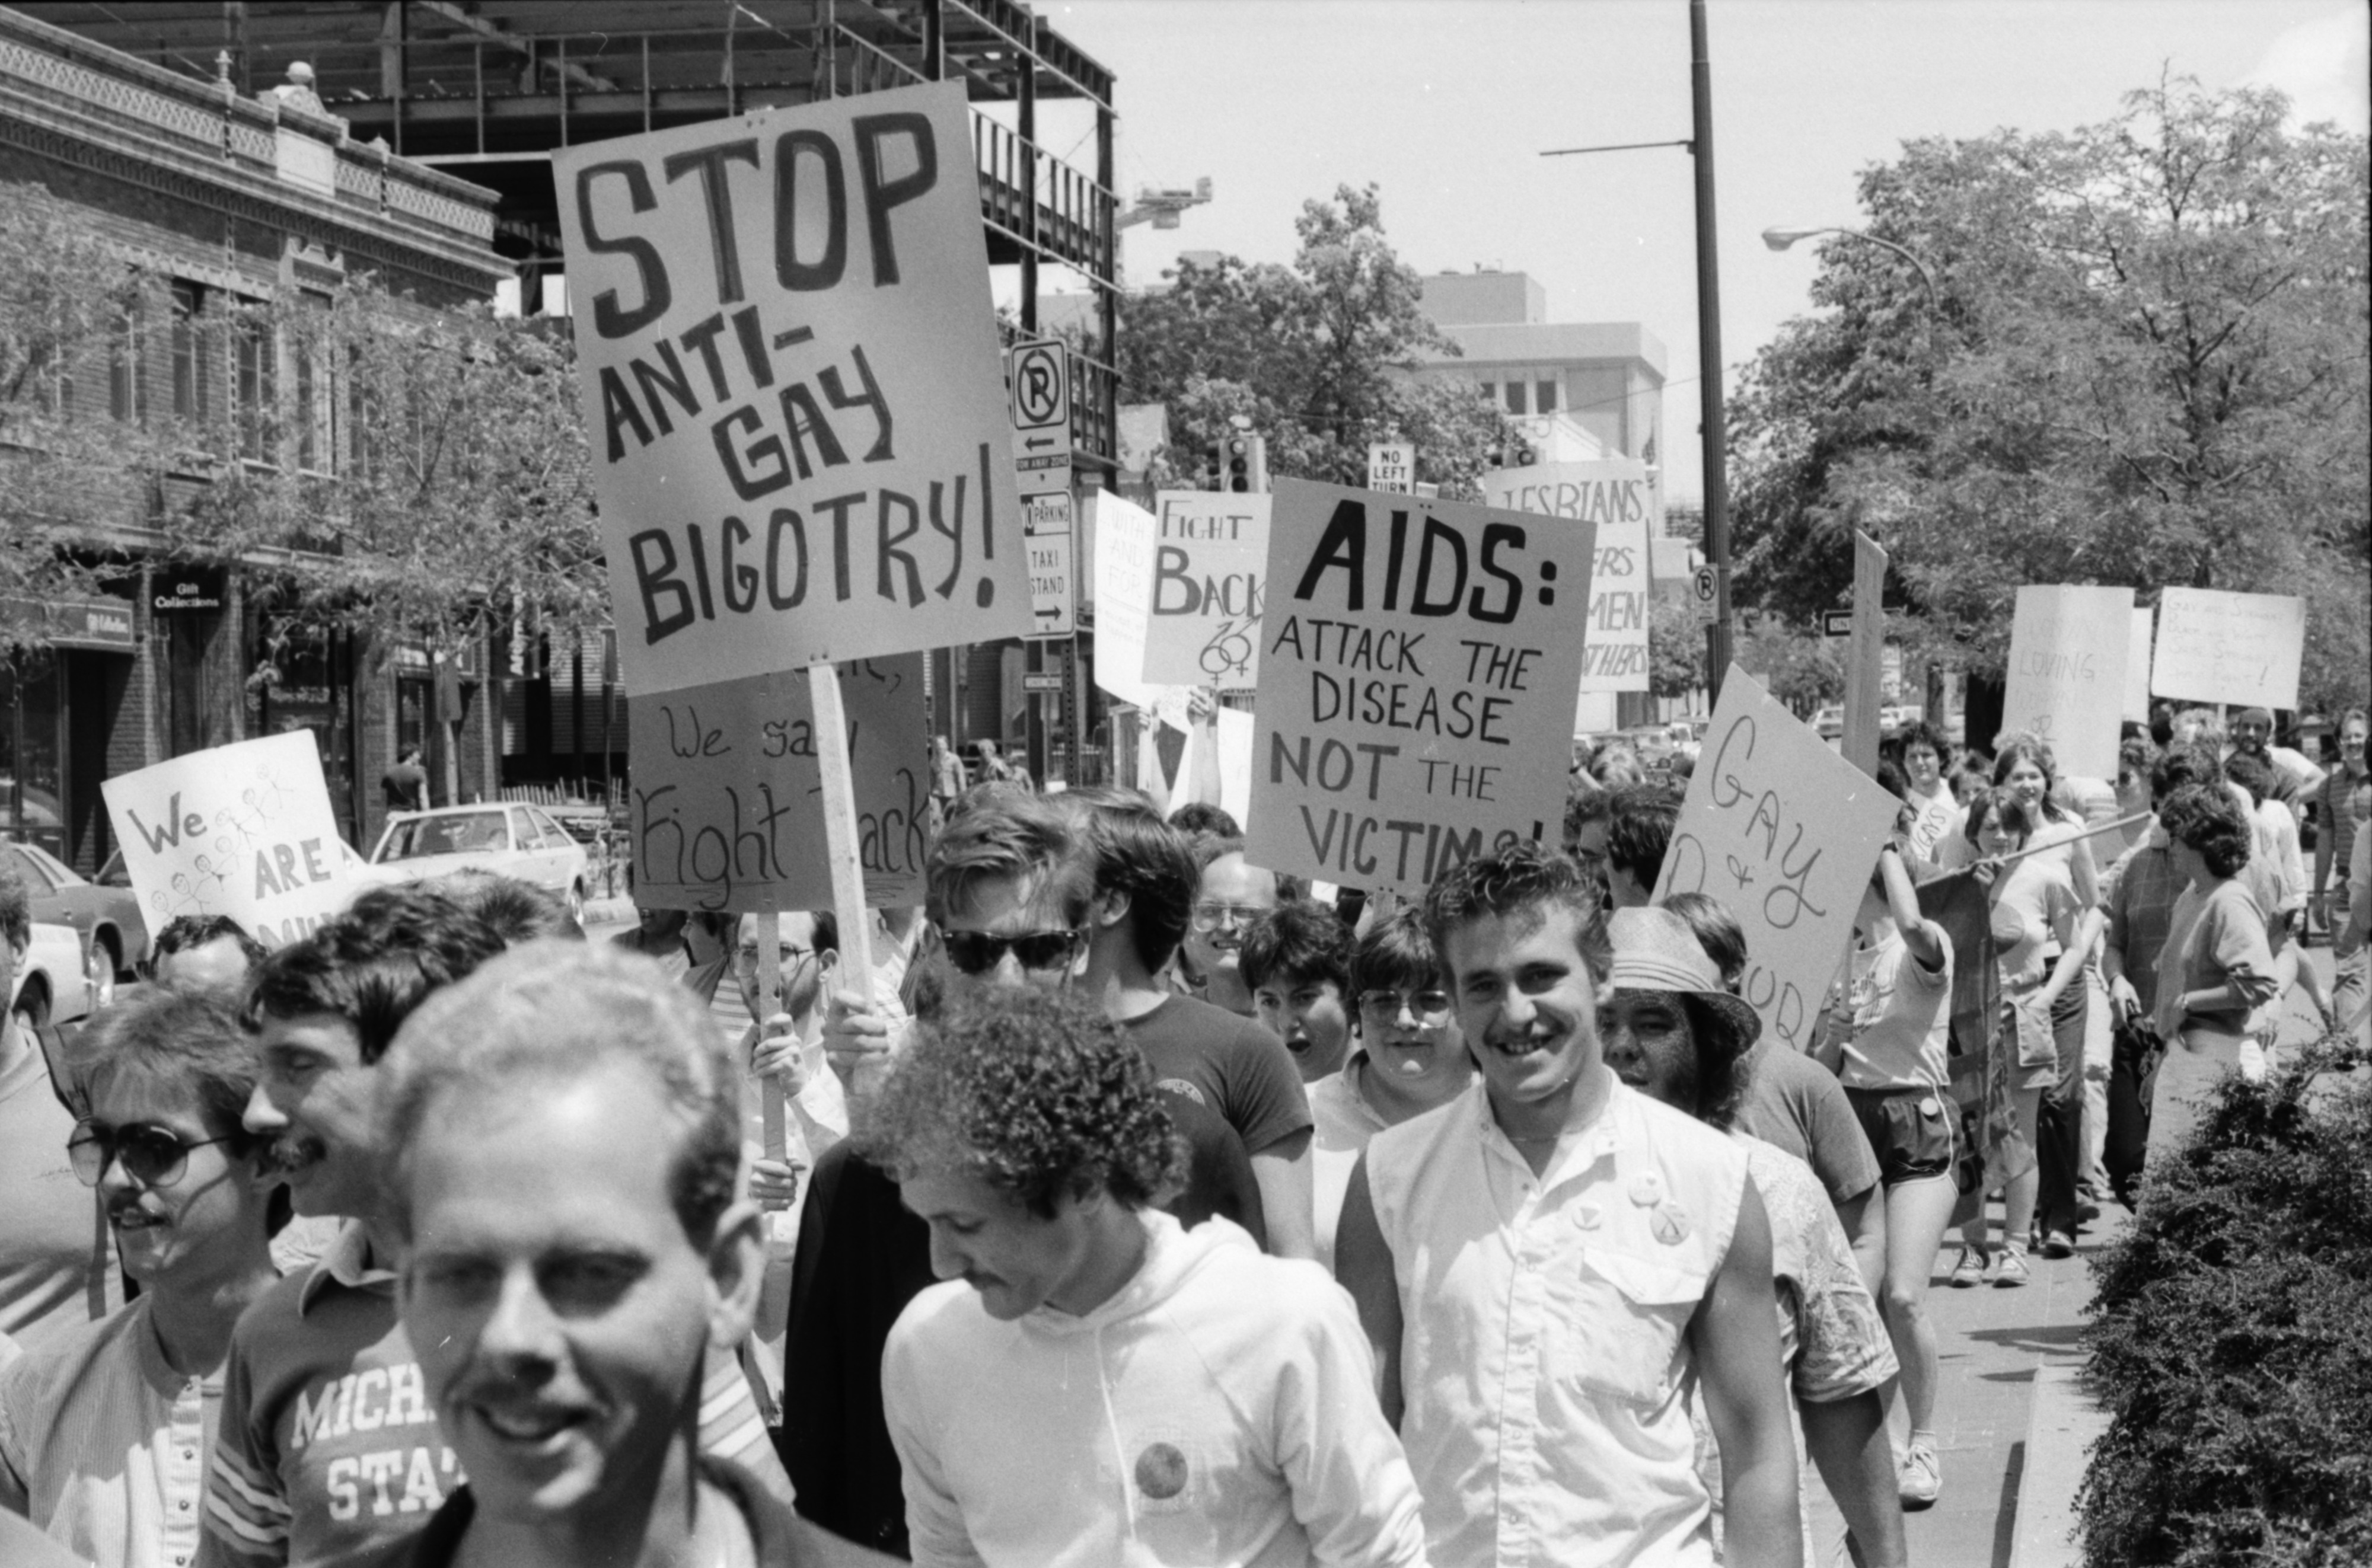 Gay Rights Activists March Downtown, June 1985 image